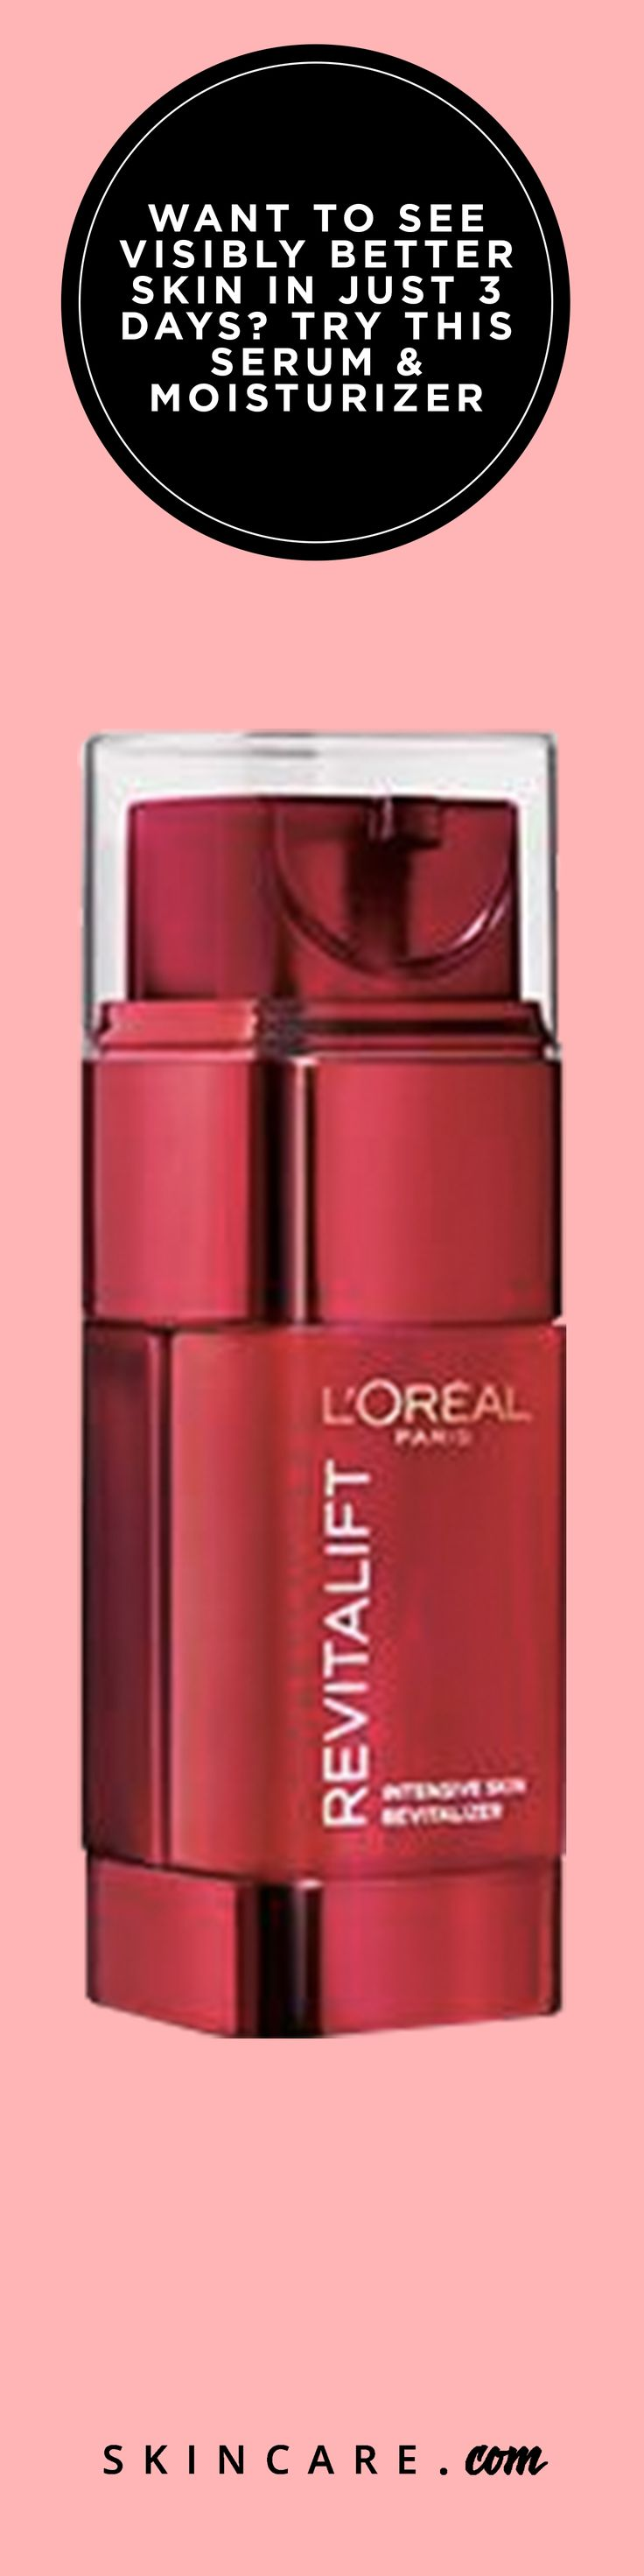 L'Oréal Paris' Revitalift Triple Power Intensive Skin Revitalizer Serum & Moisturizer can offer noticeable results in less than a week! From re-firming skin elasticity to re-surfacing skin texture, this dual-action product is perfect for those who want flawless skin without spending too much time on their routine.